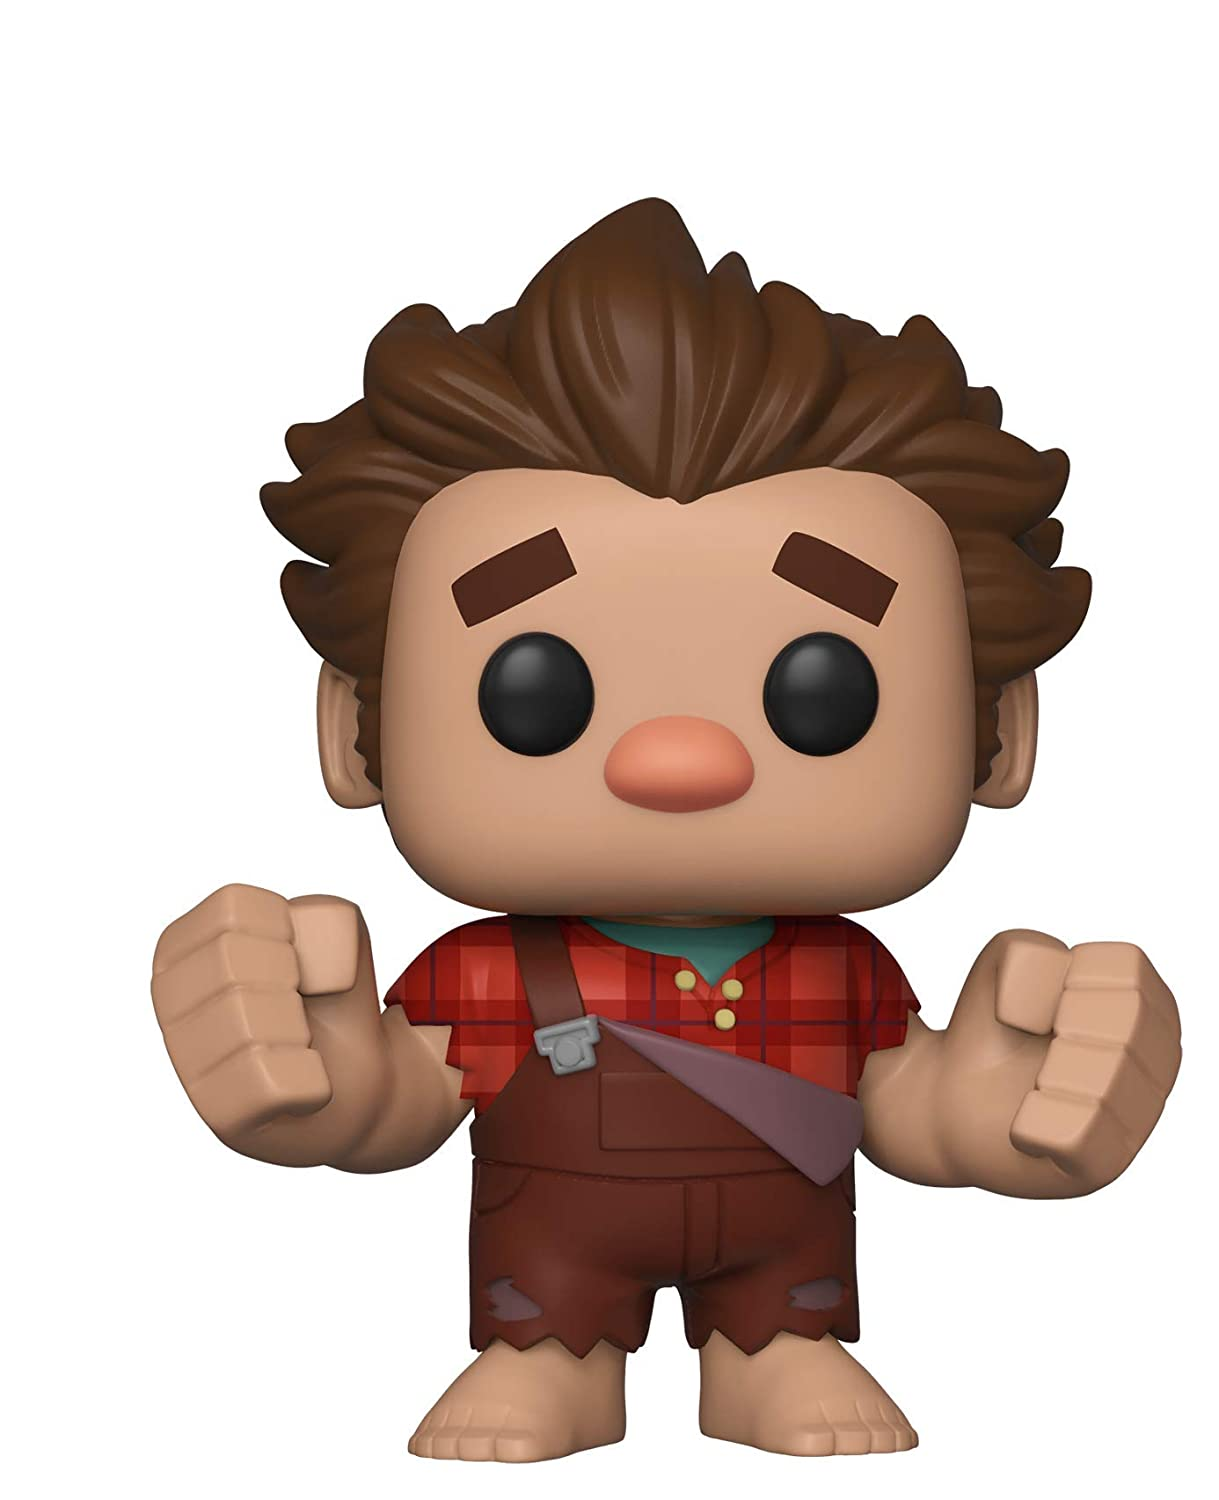 Funko 33403 Pop Disney: Wreck-It Ralph 2 Collectible Figure, Multicolor